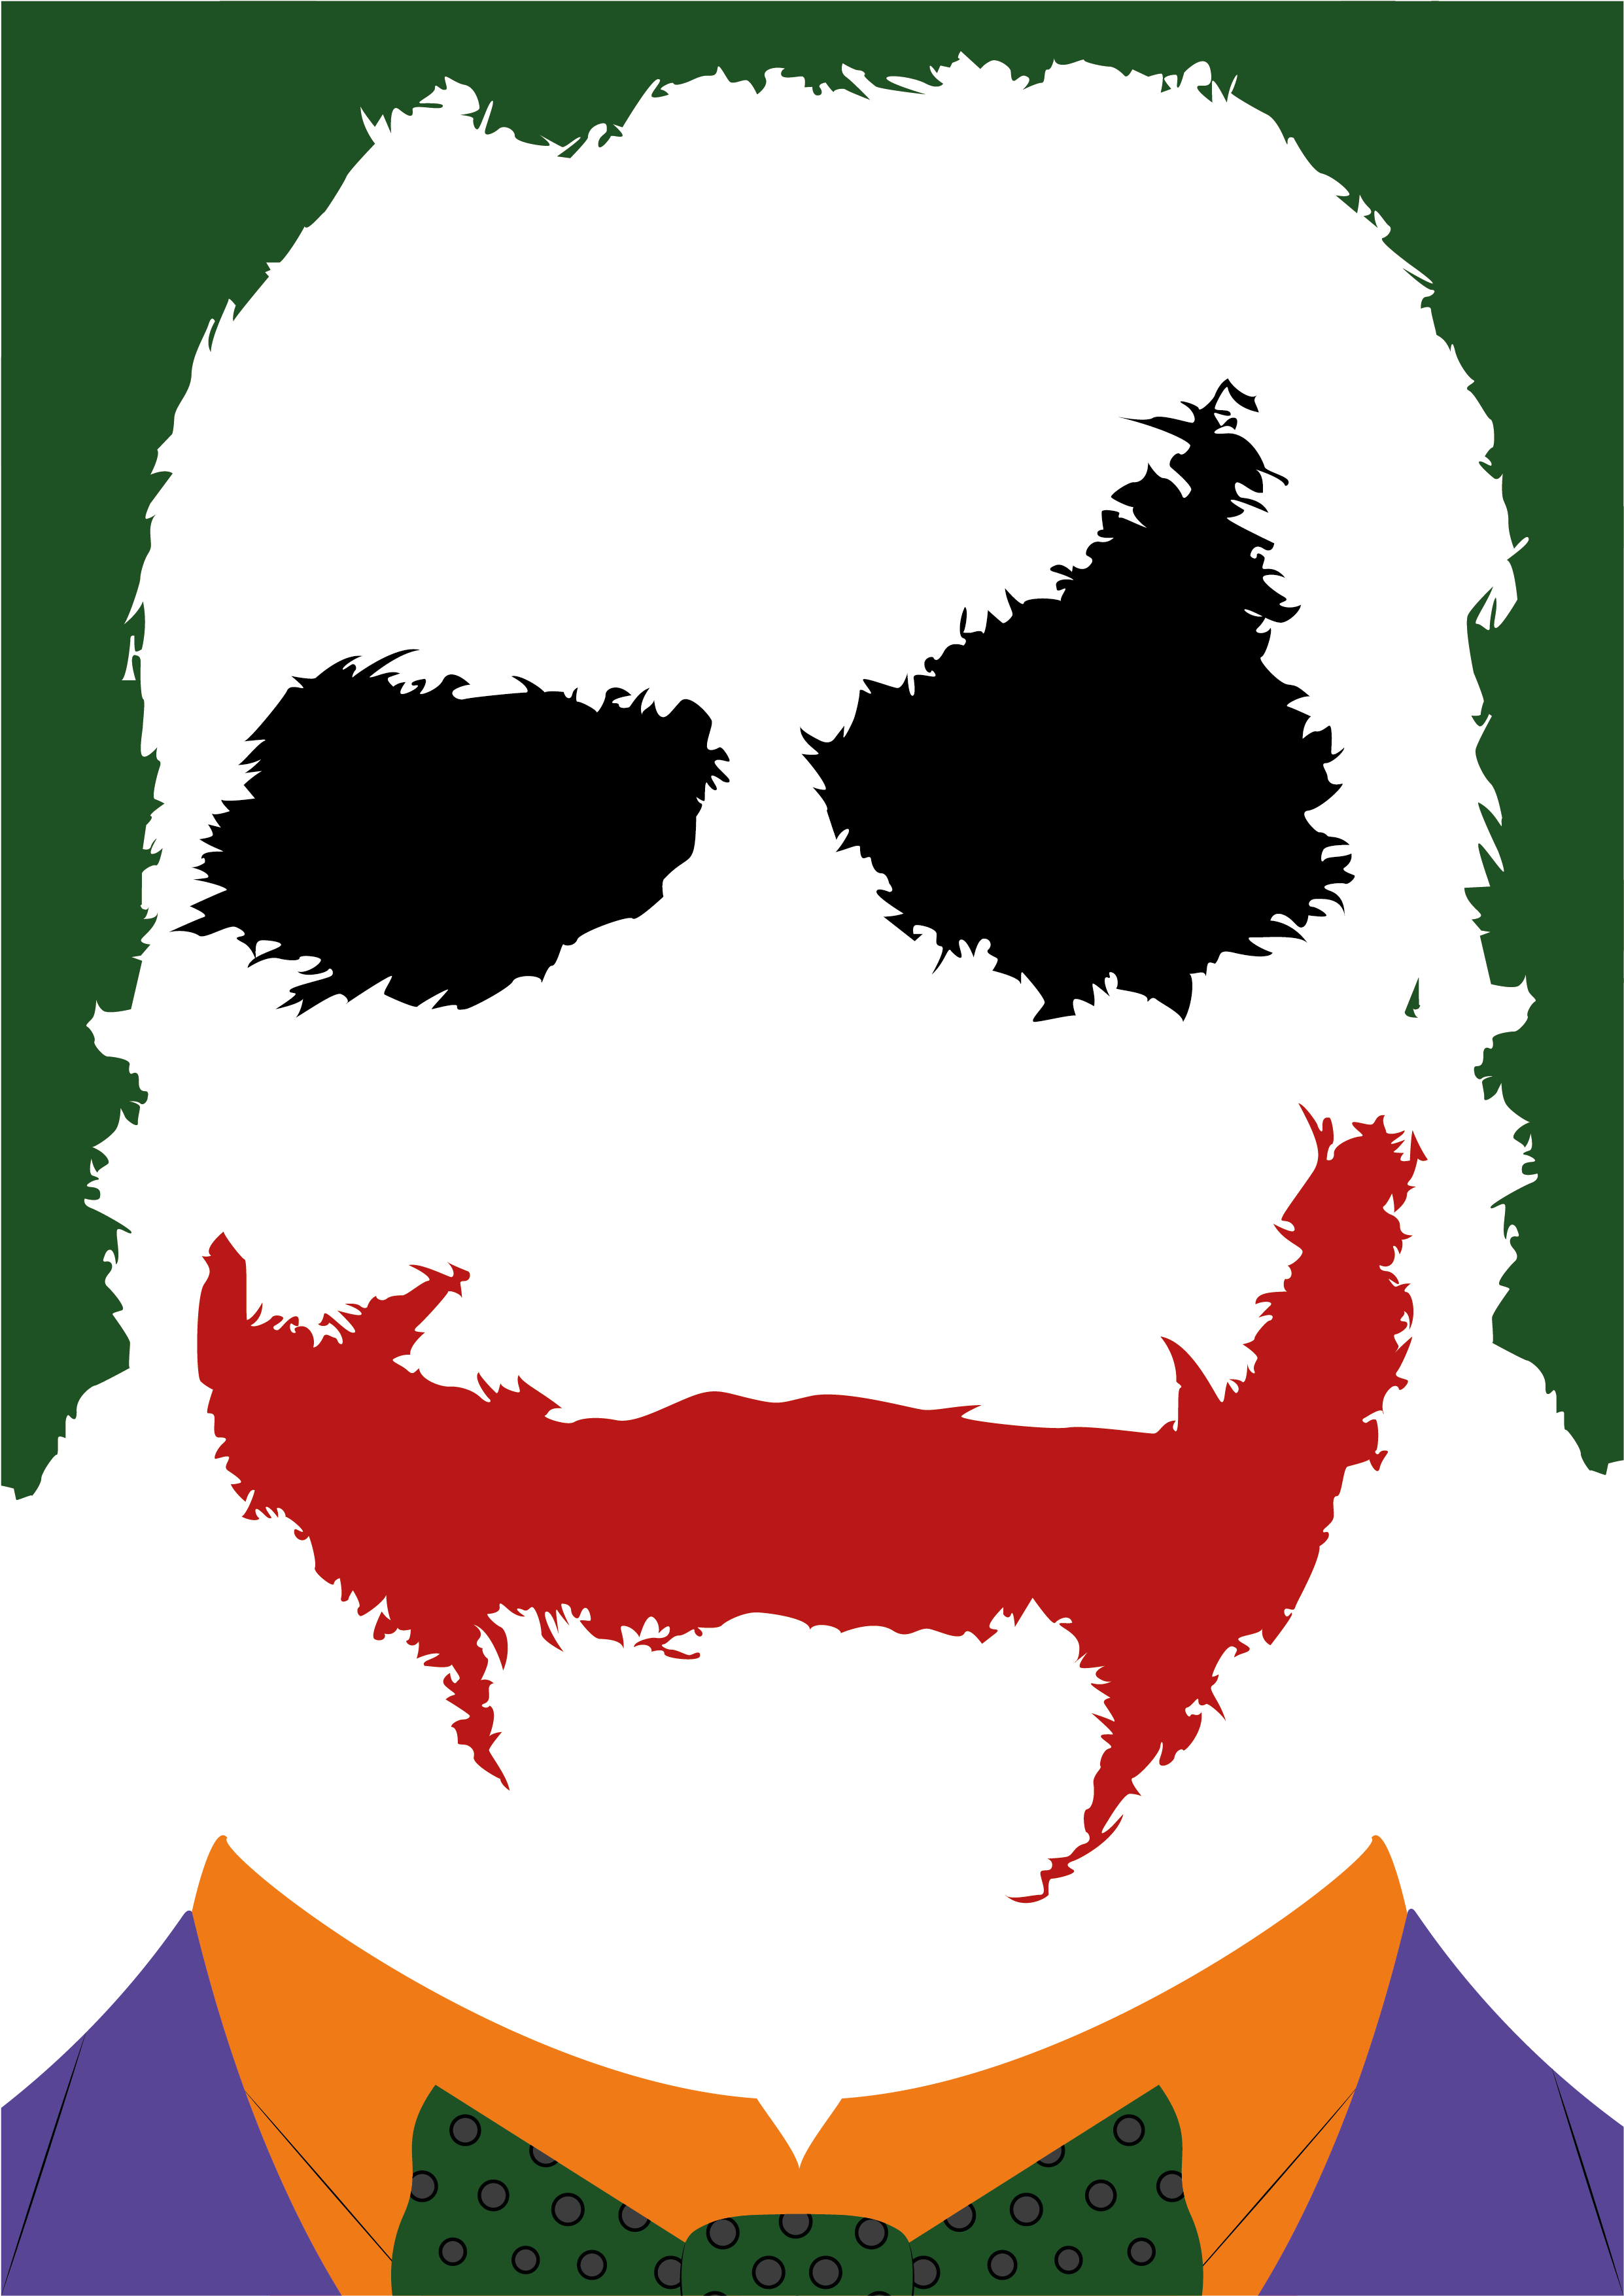 Jpg Free Stock Joker From Batman The Dark Knight Illustrator.